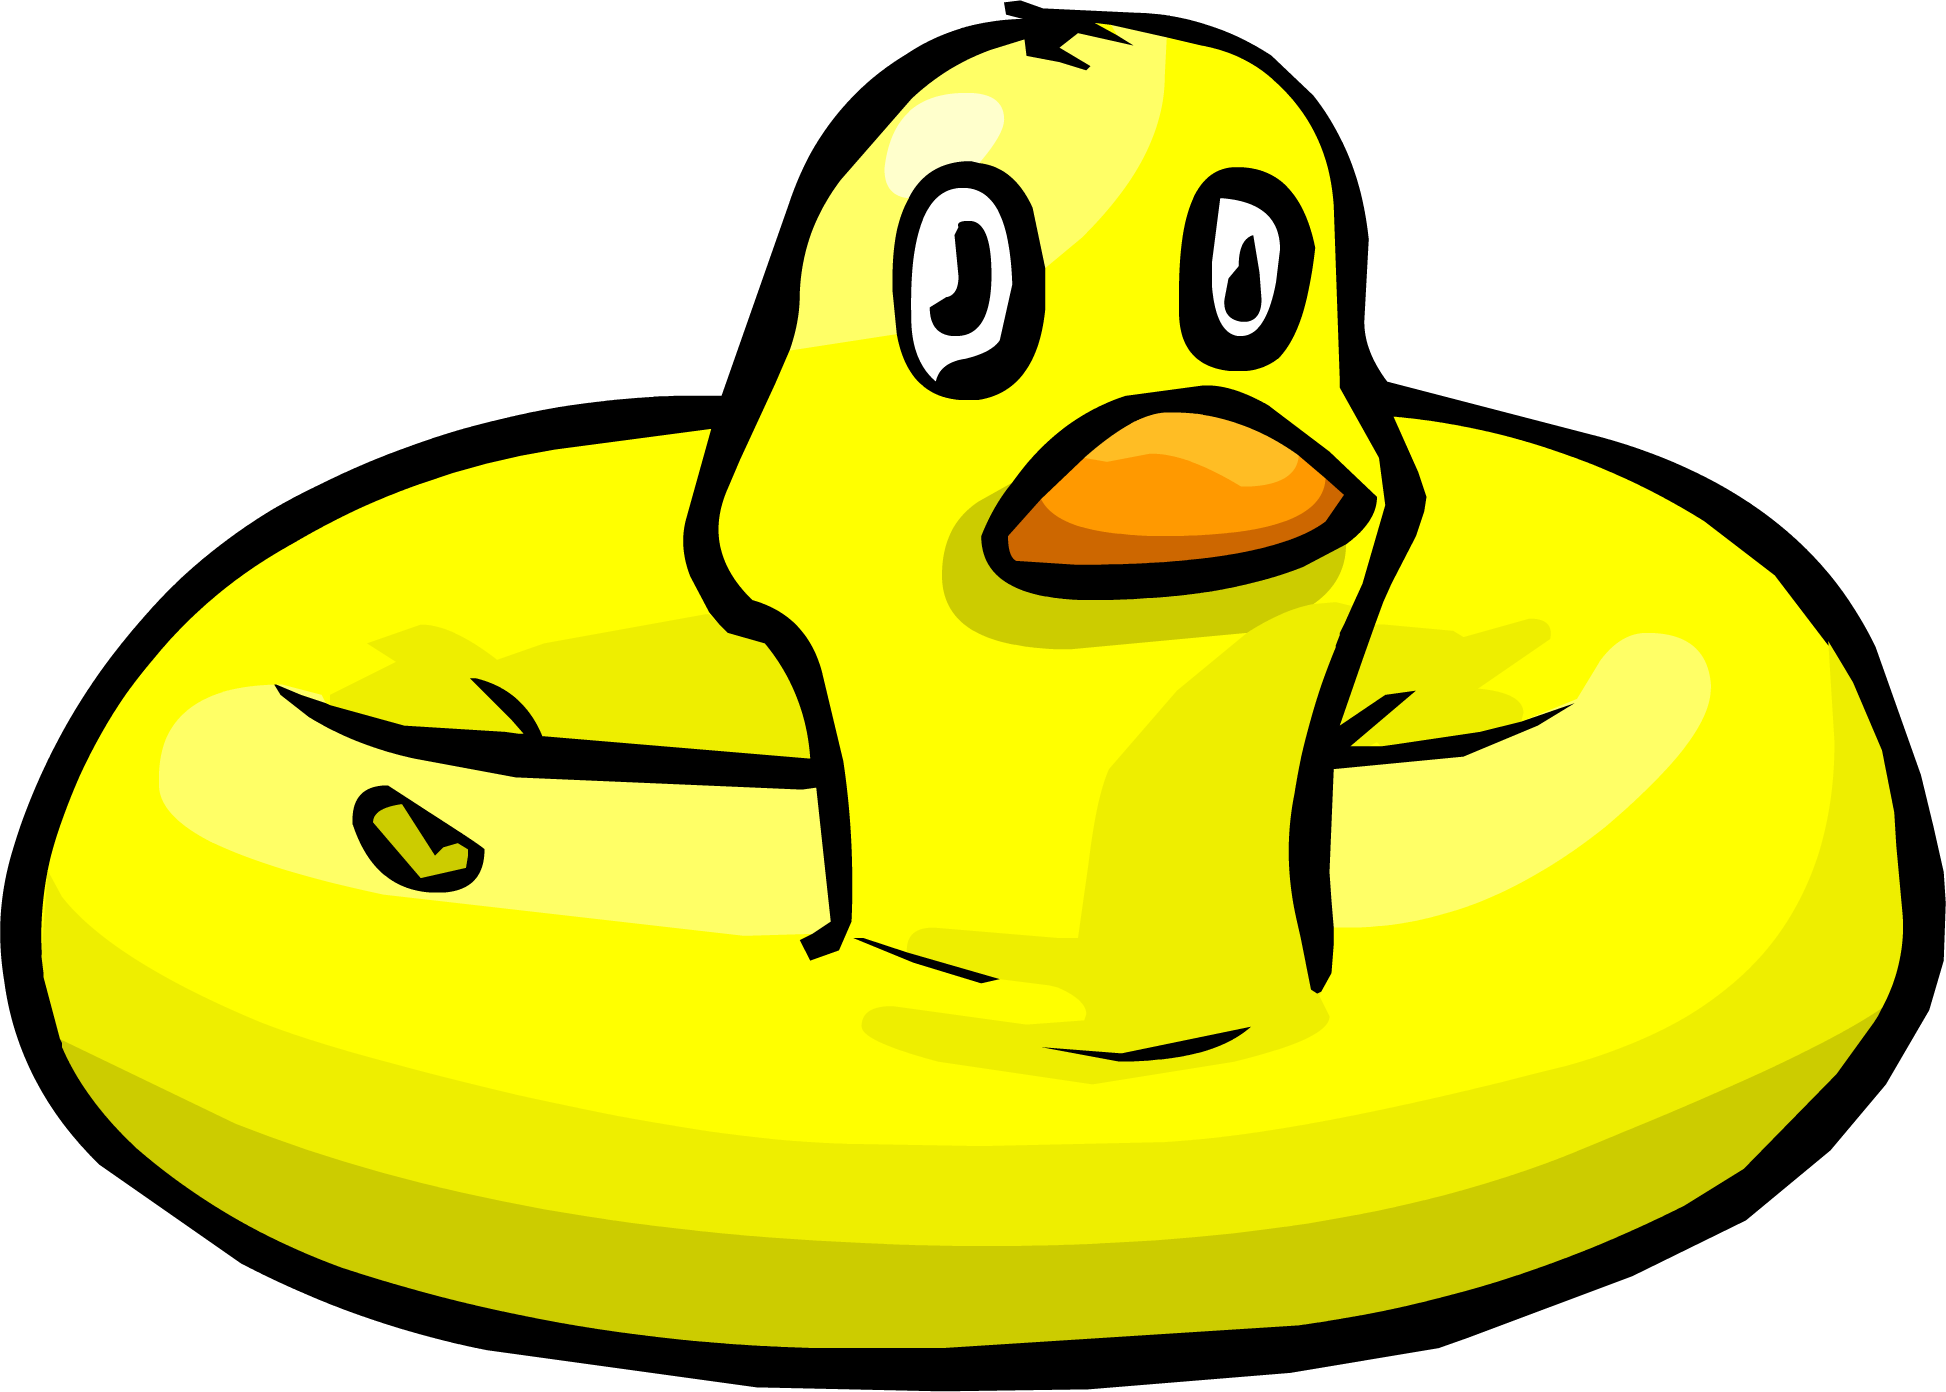 Image result for club penguin duck